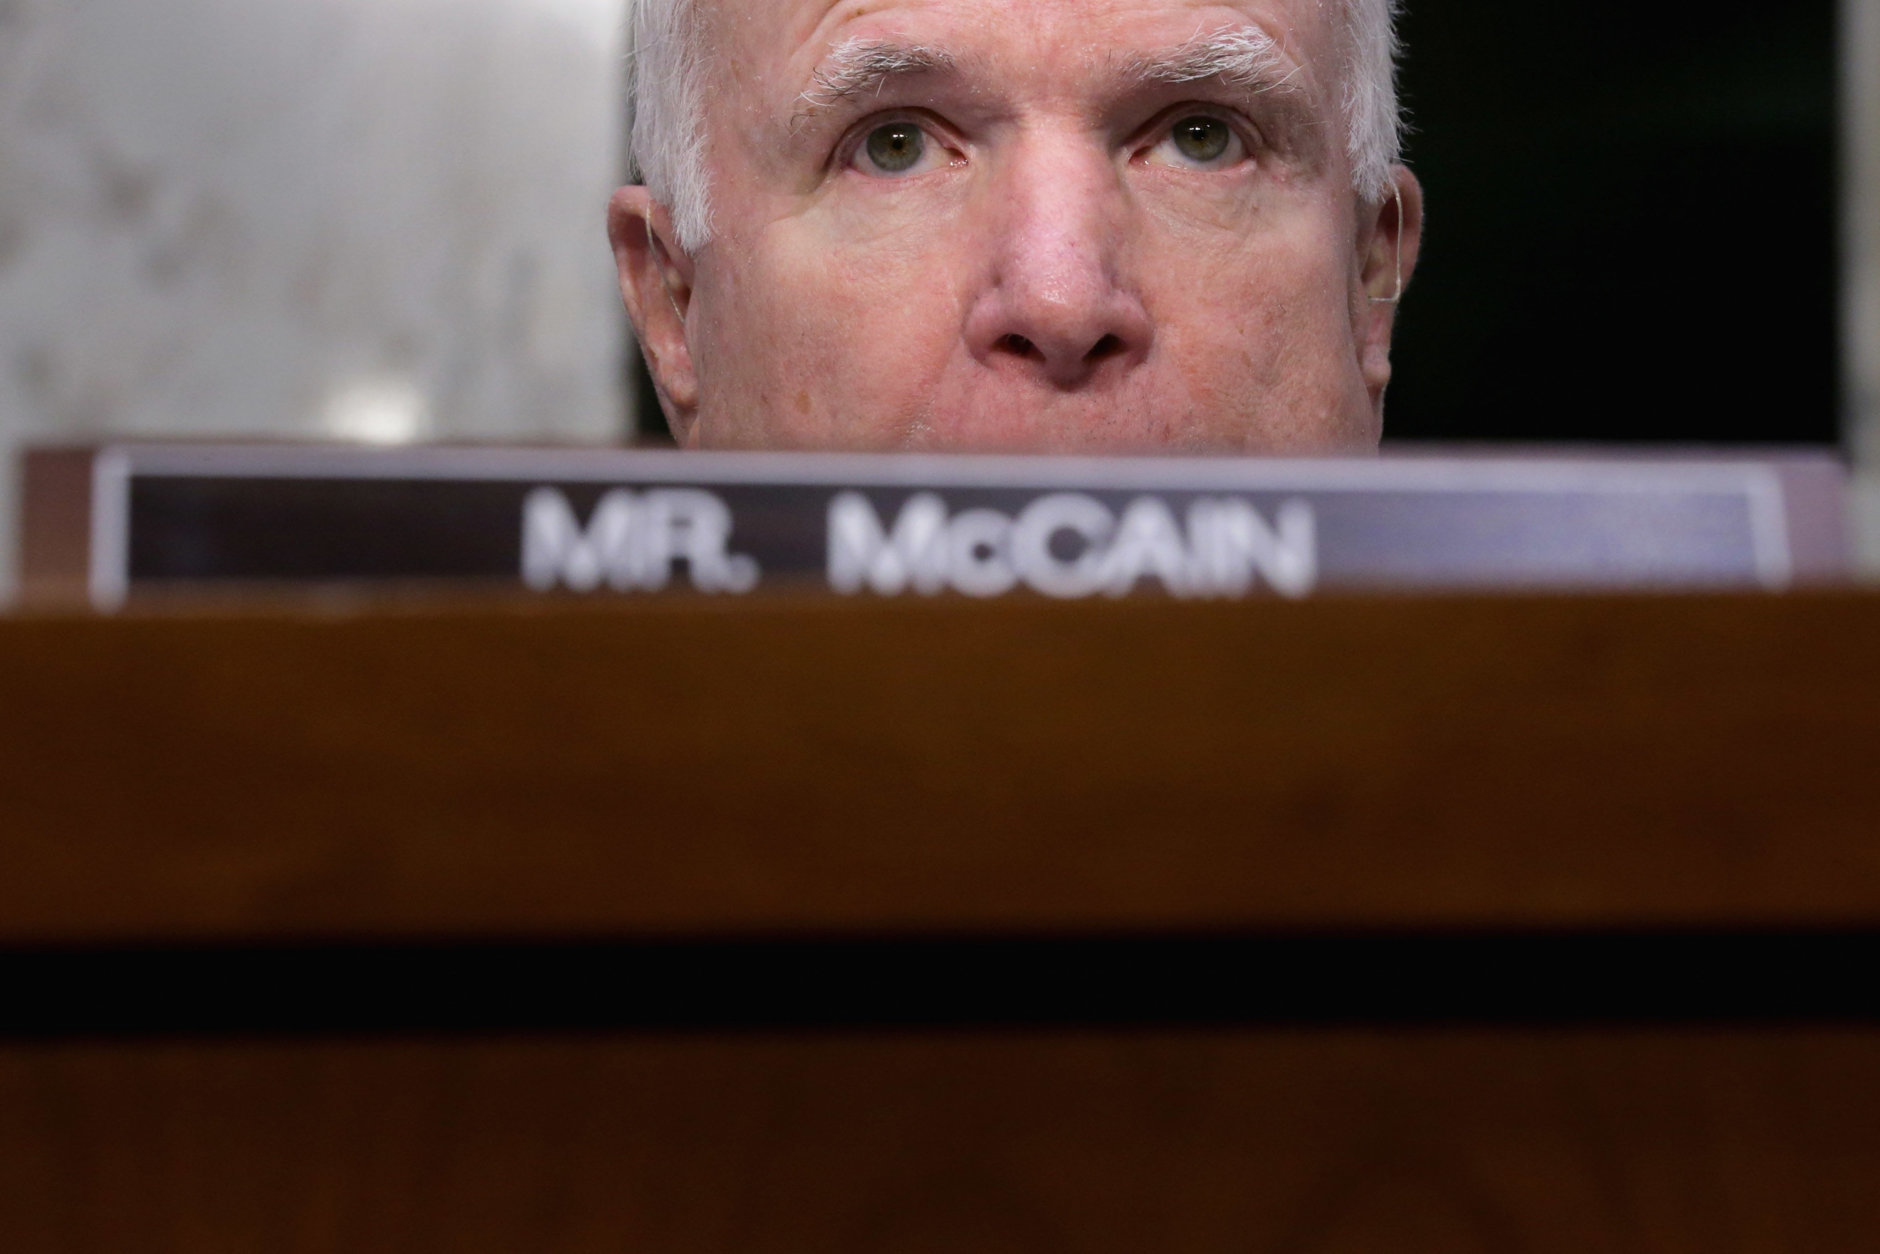 """Senate Armed Services Committee Chairman Sen. John McCain (R-AZ) delivers an opening statement before hearing testimony from U.S. Cyber Command head and NSA Director Navy Adm. Michael Rogers in the Hart Senate Office Building on Capitol Hill April 5, 2016 in Washington, DC. When asked by McCain if Russia has the capability to inflict harm on the United States' cyber infrastructure, Rogers replied, """"Yes.""""  (Photo by Chip Somodevilla/Getty Images)"""